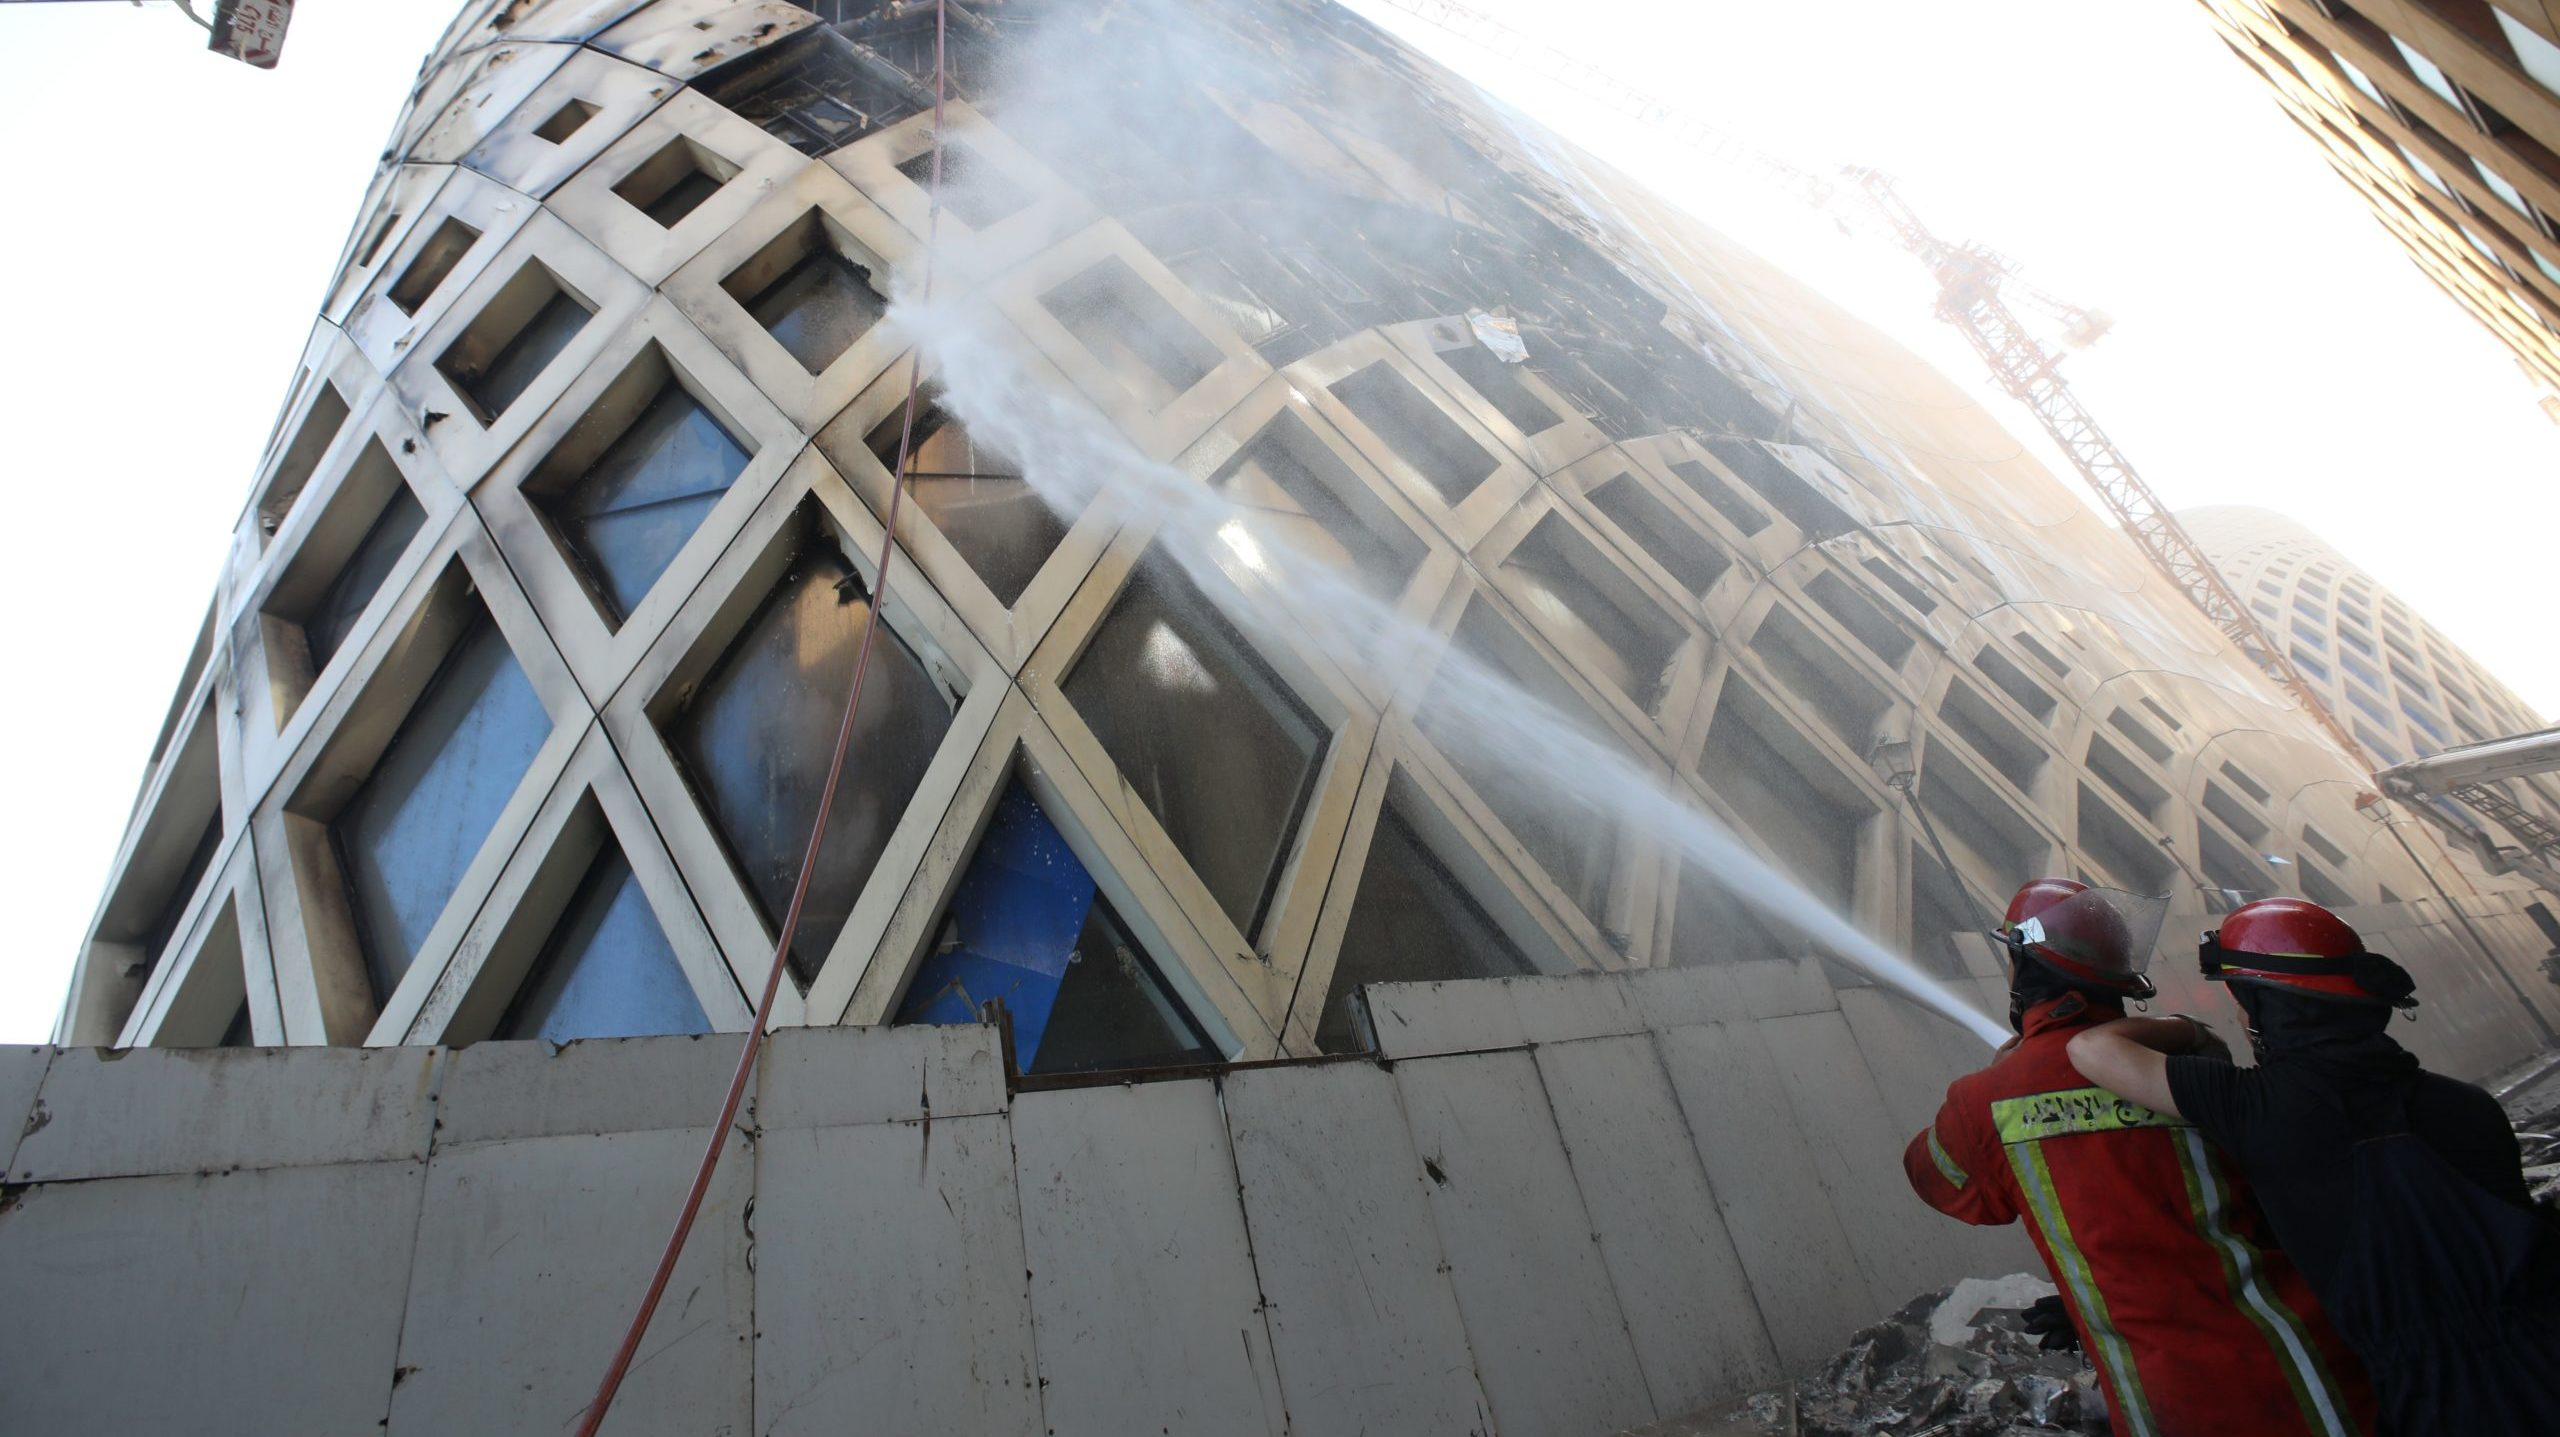 Beirut Suffers 3rd Large Fire in Week